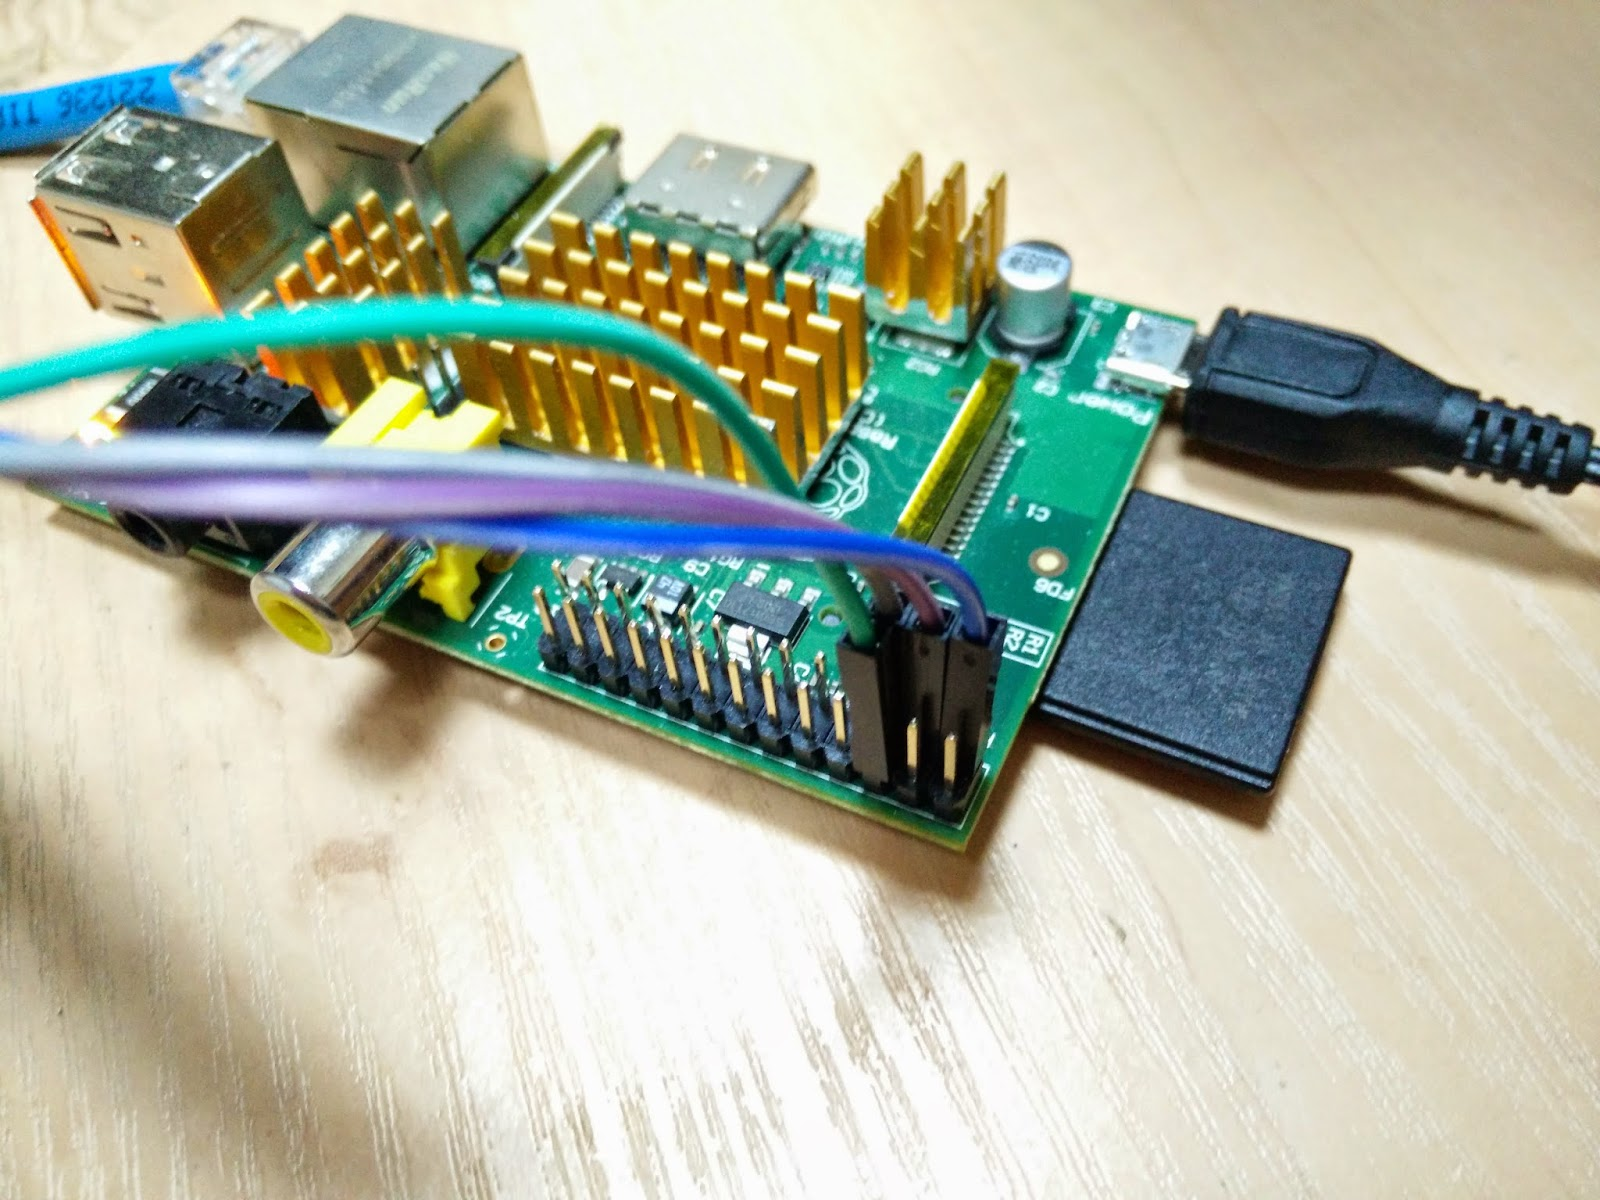 JFF (Just For Fun): Installing hardware RTC (DS3231) to Raspberry Pi